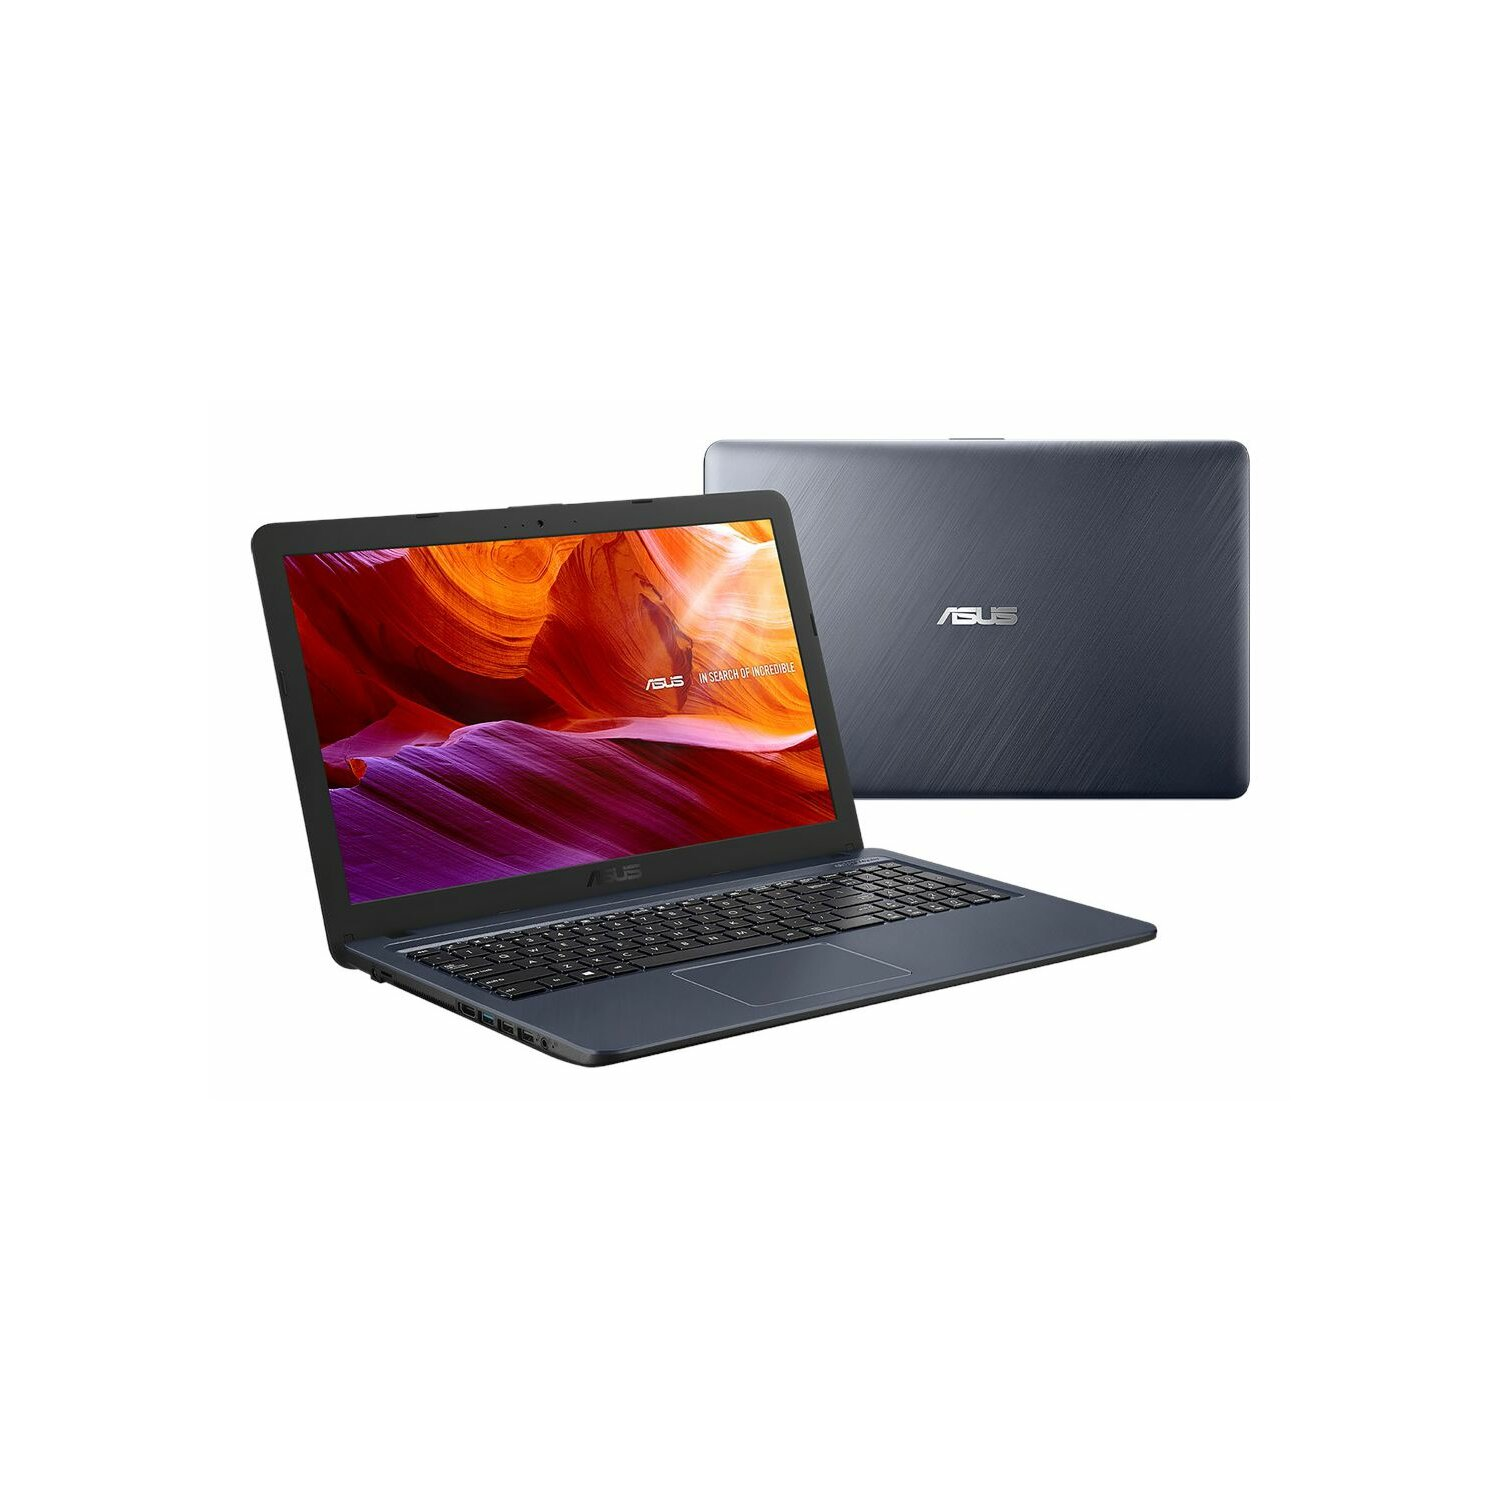 Laptop ASUS F543MA-DM695T N4000/4GB/256GB SSD/INT/Win10H Szary